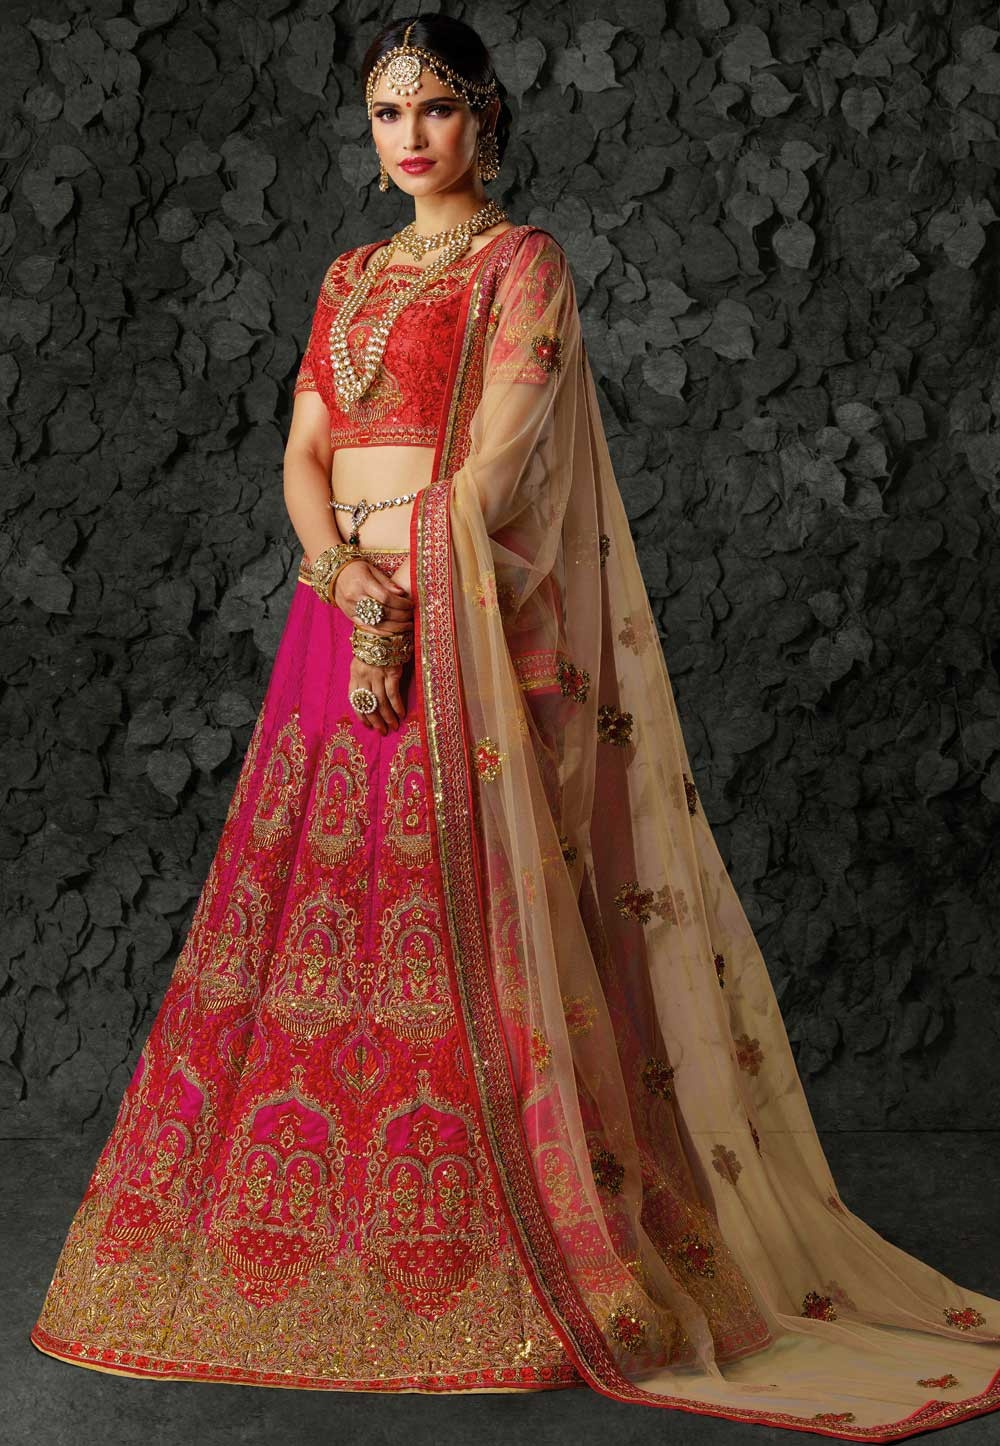 Red Bridal Lehenga for an Indian Bride